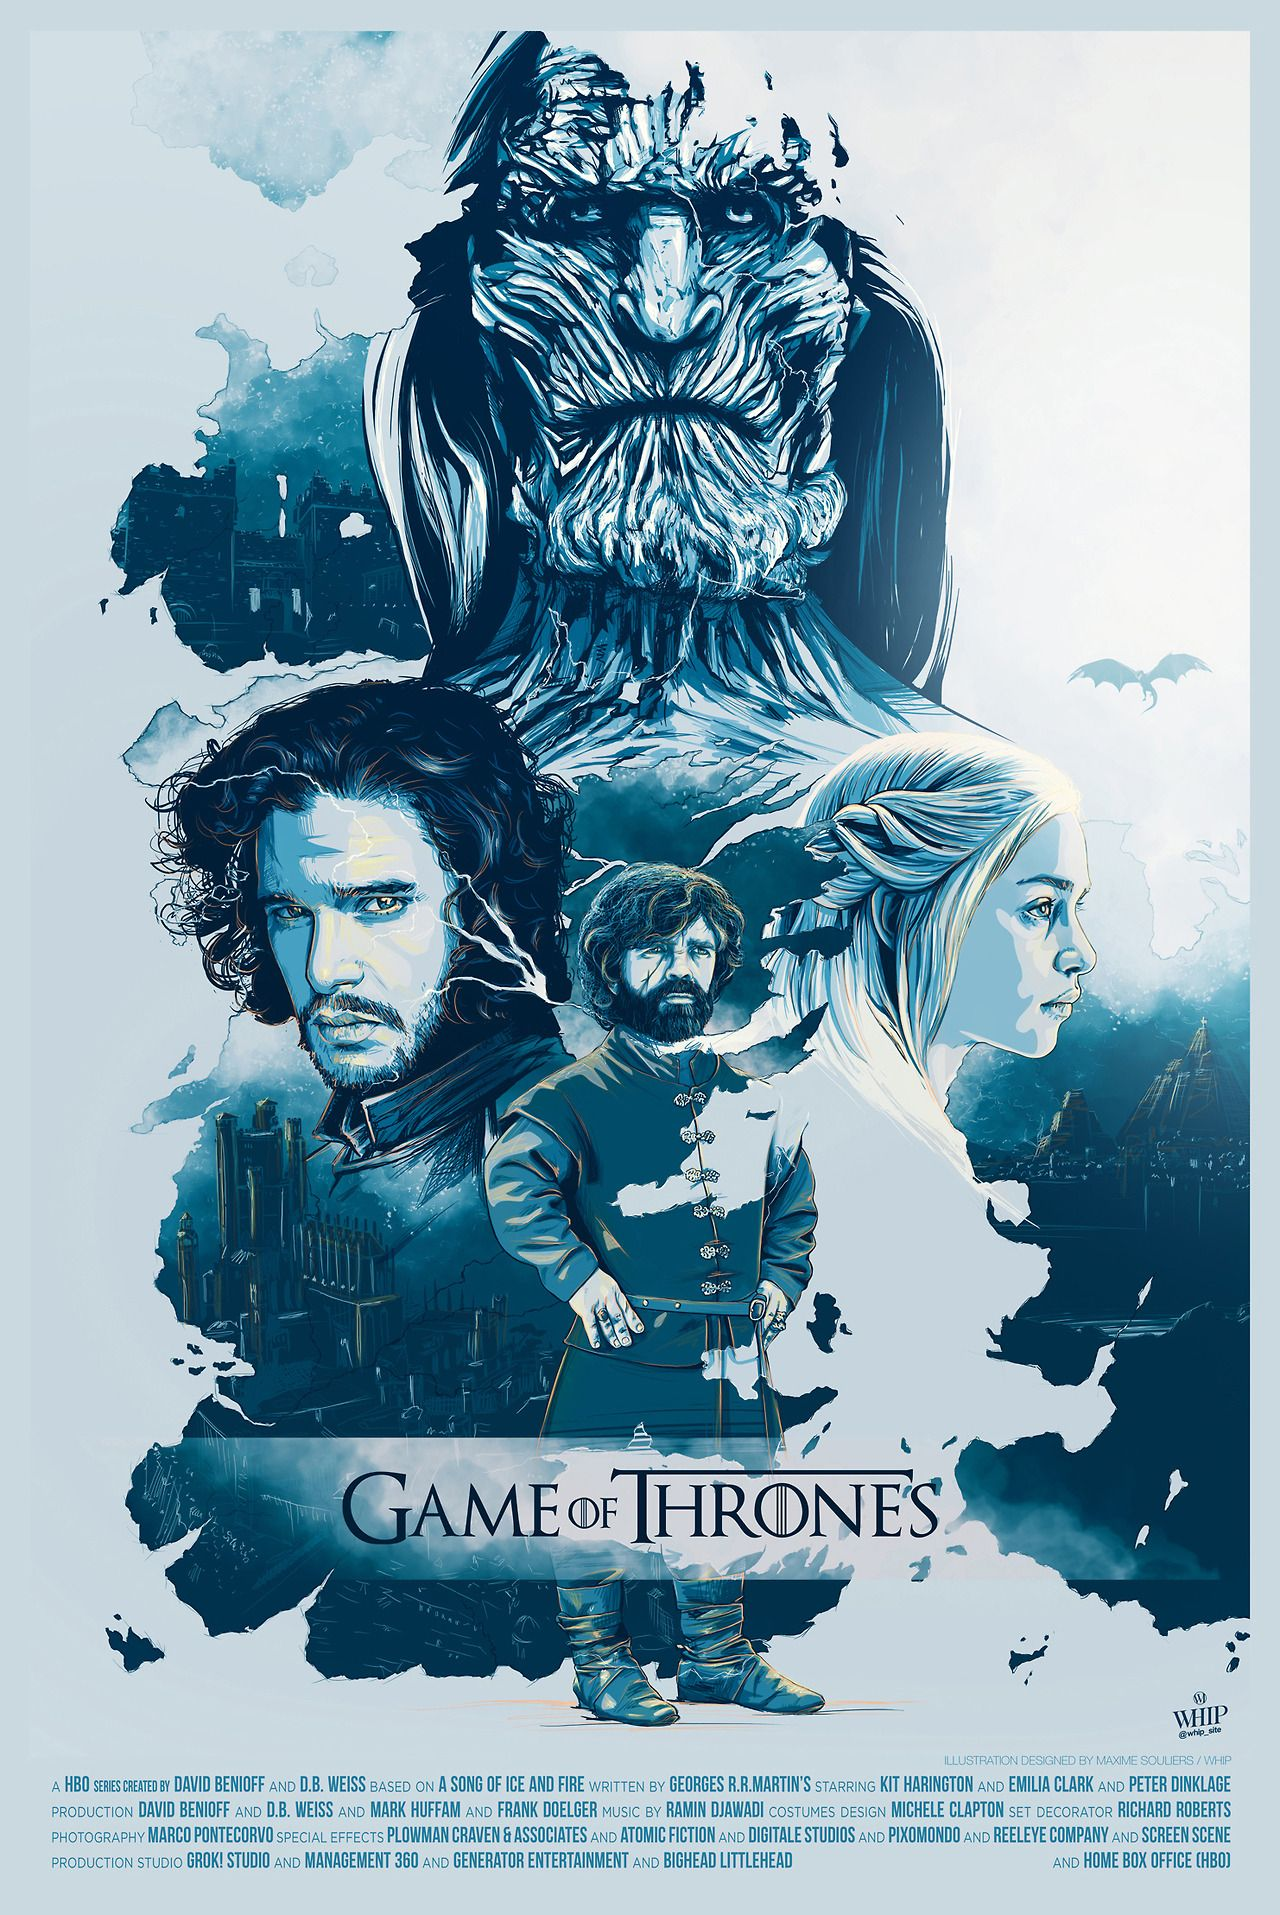 Game Of Thrones Poster Created By Whip Game Of Thrones Poster Watch Game Of Thrones Game Of Thrones Art